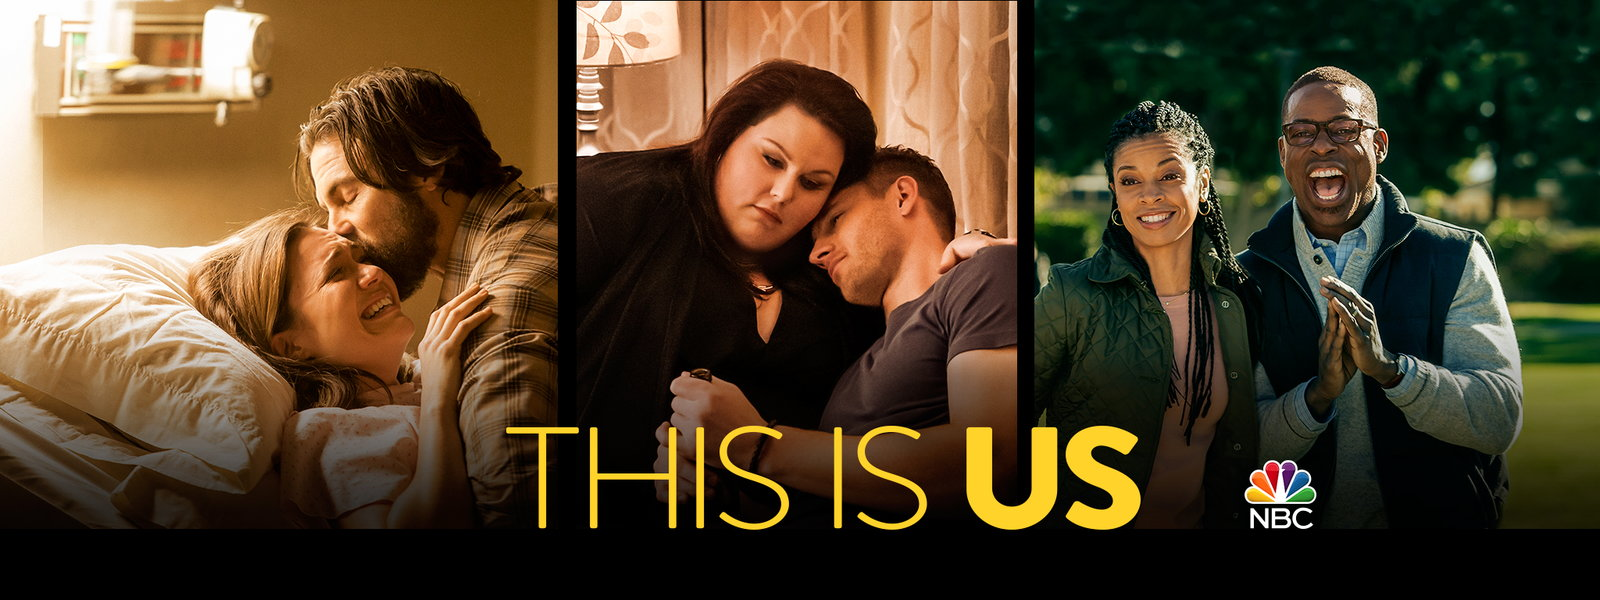 This Is Us - Season 1 - Mp4 x264 AC3 1080p Torrent